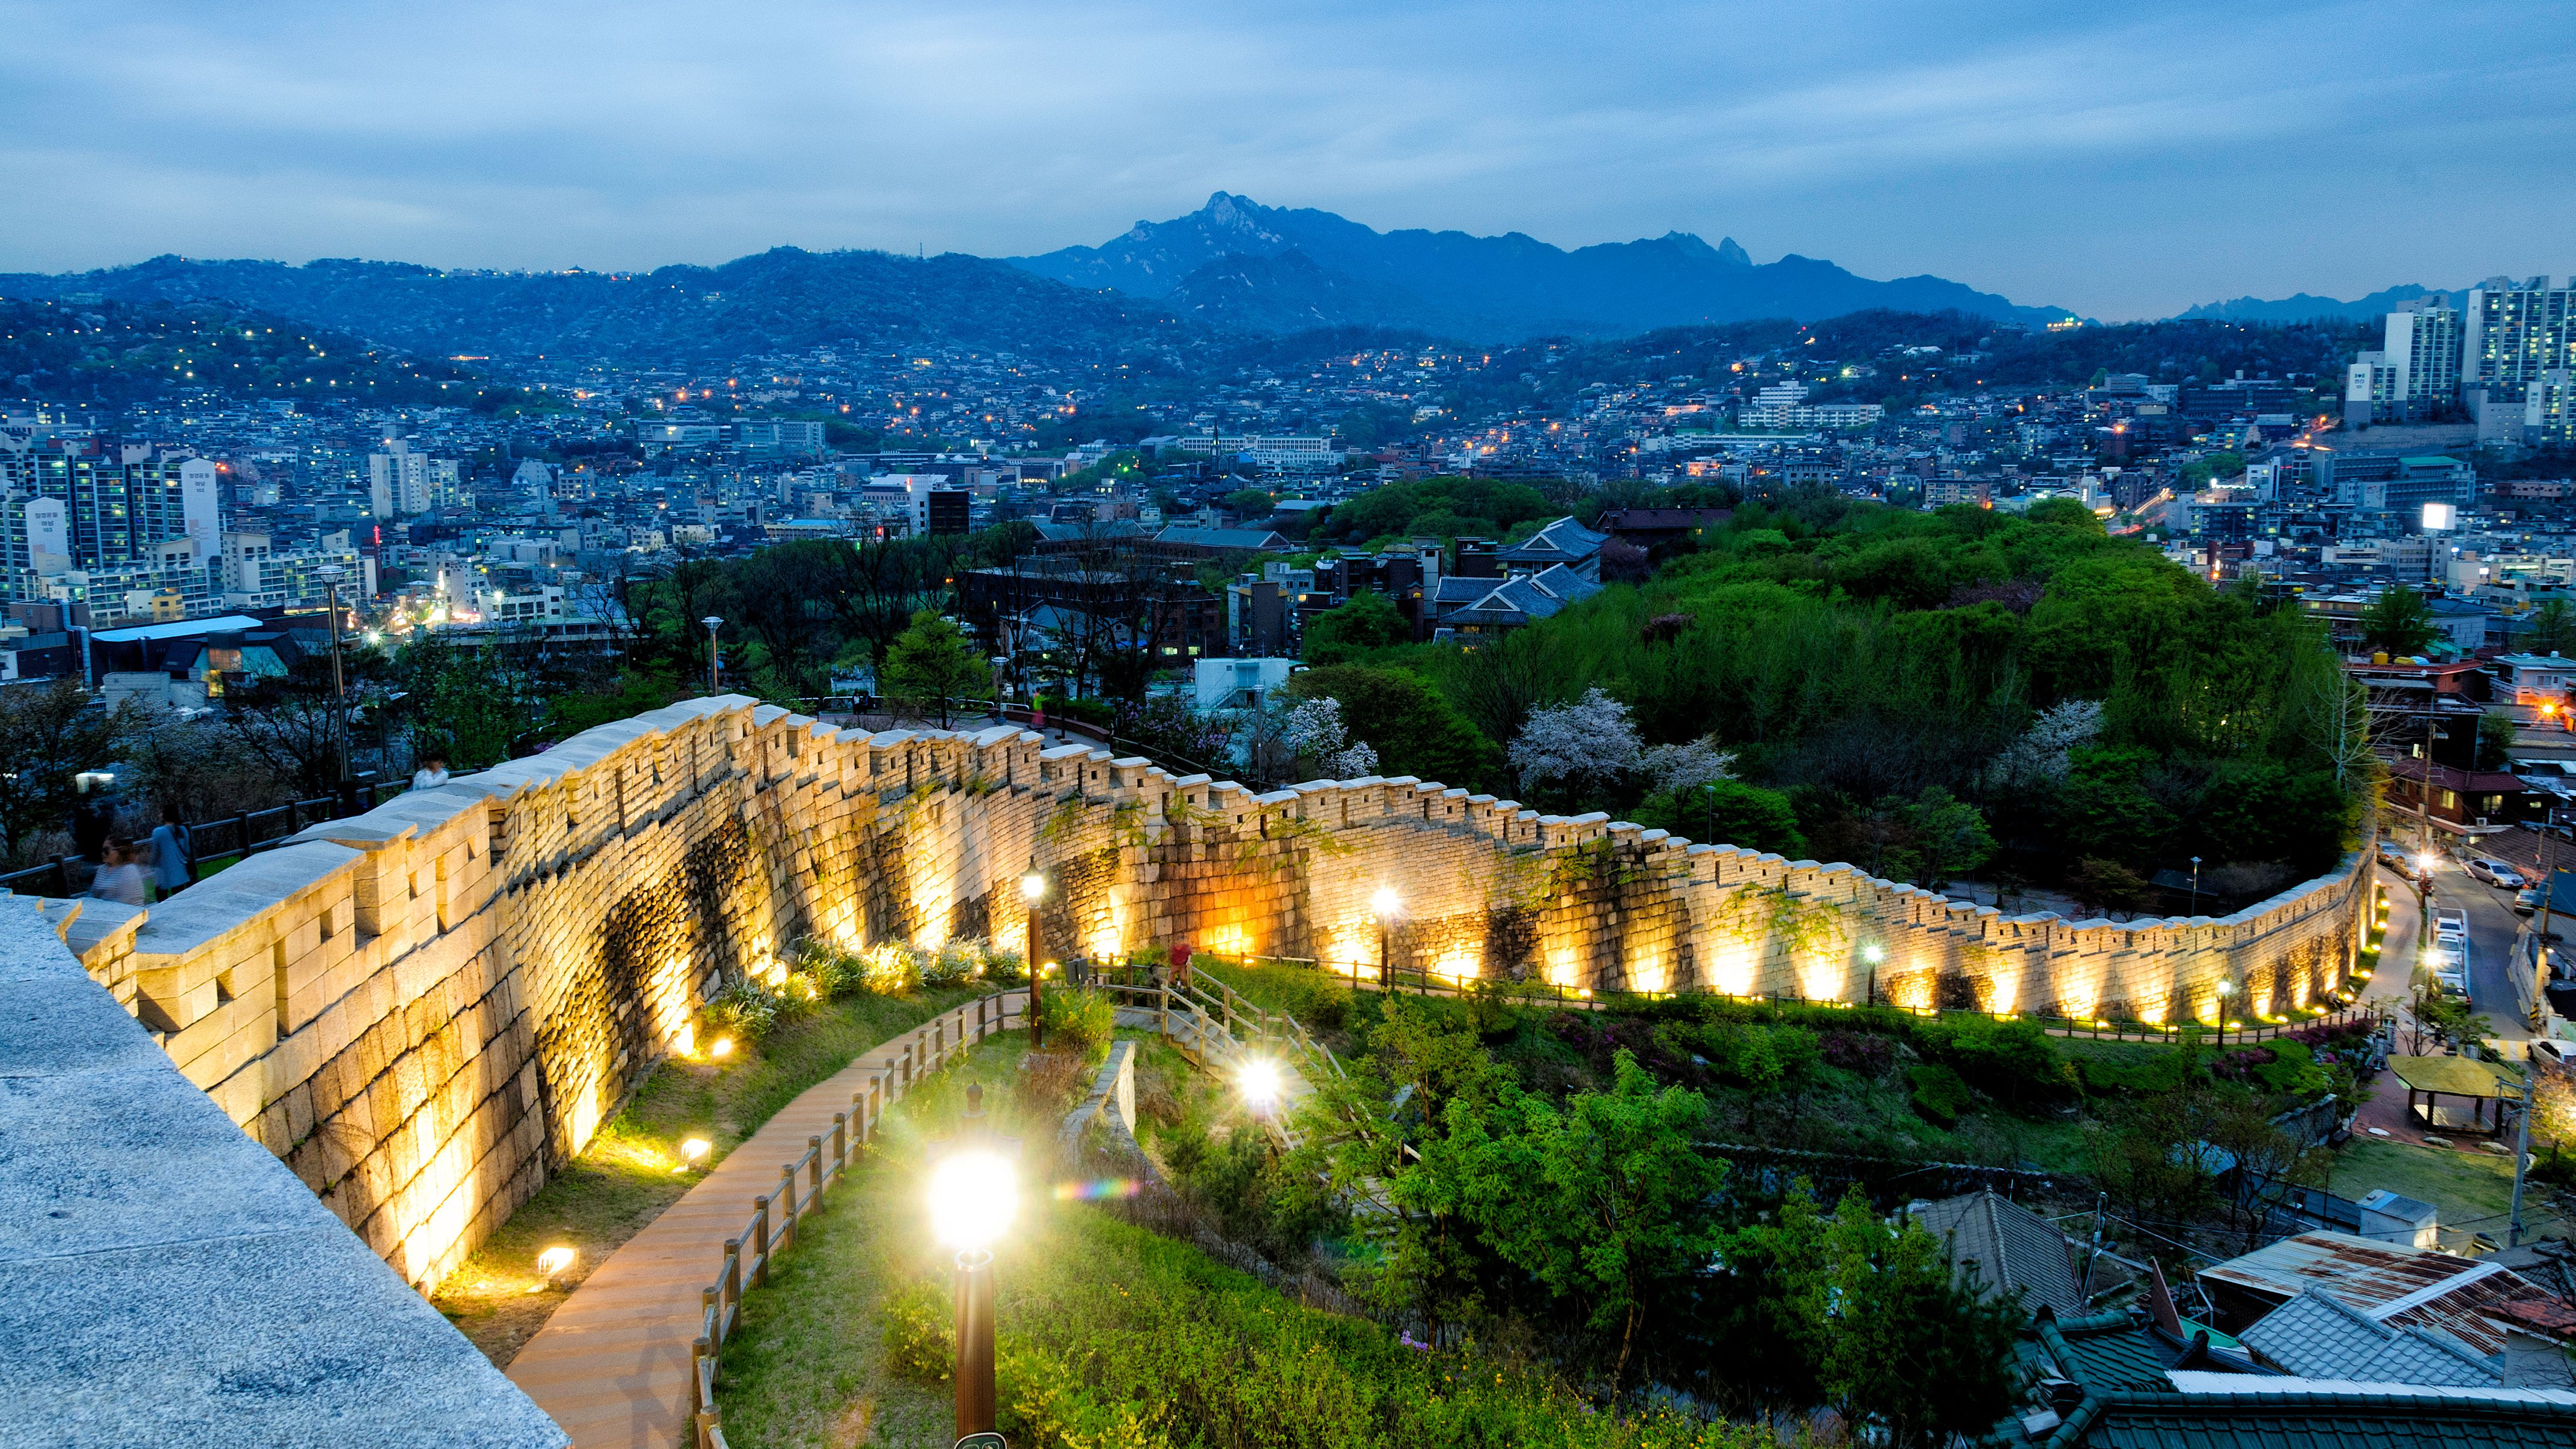 The old Fortress Wall of Seoul in Naksan Park Jongno District Seoul South Korea [42882412] | South korea travel, Fortress wall, City